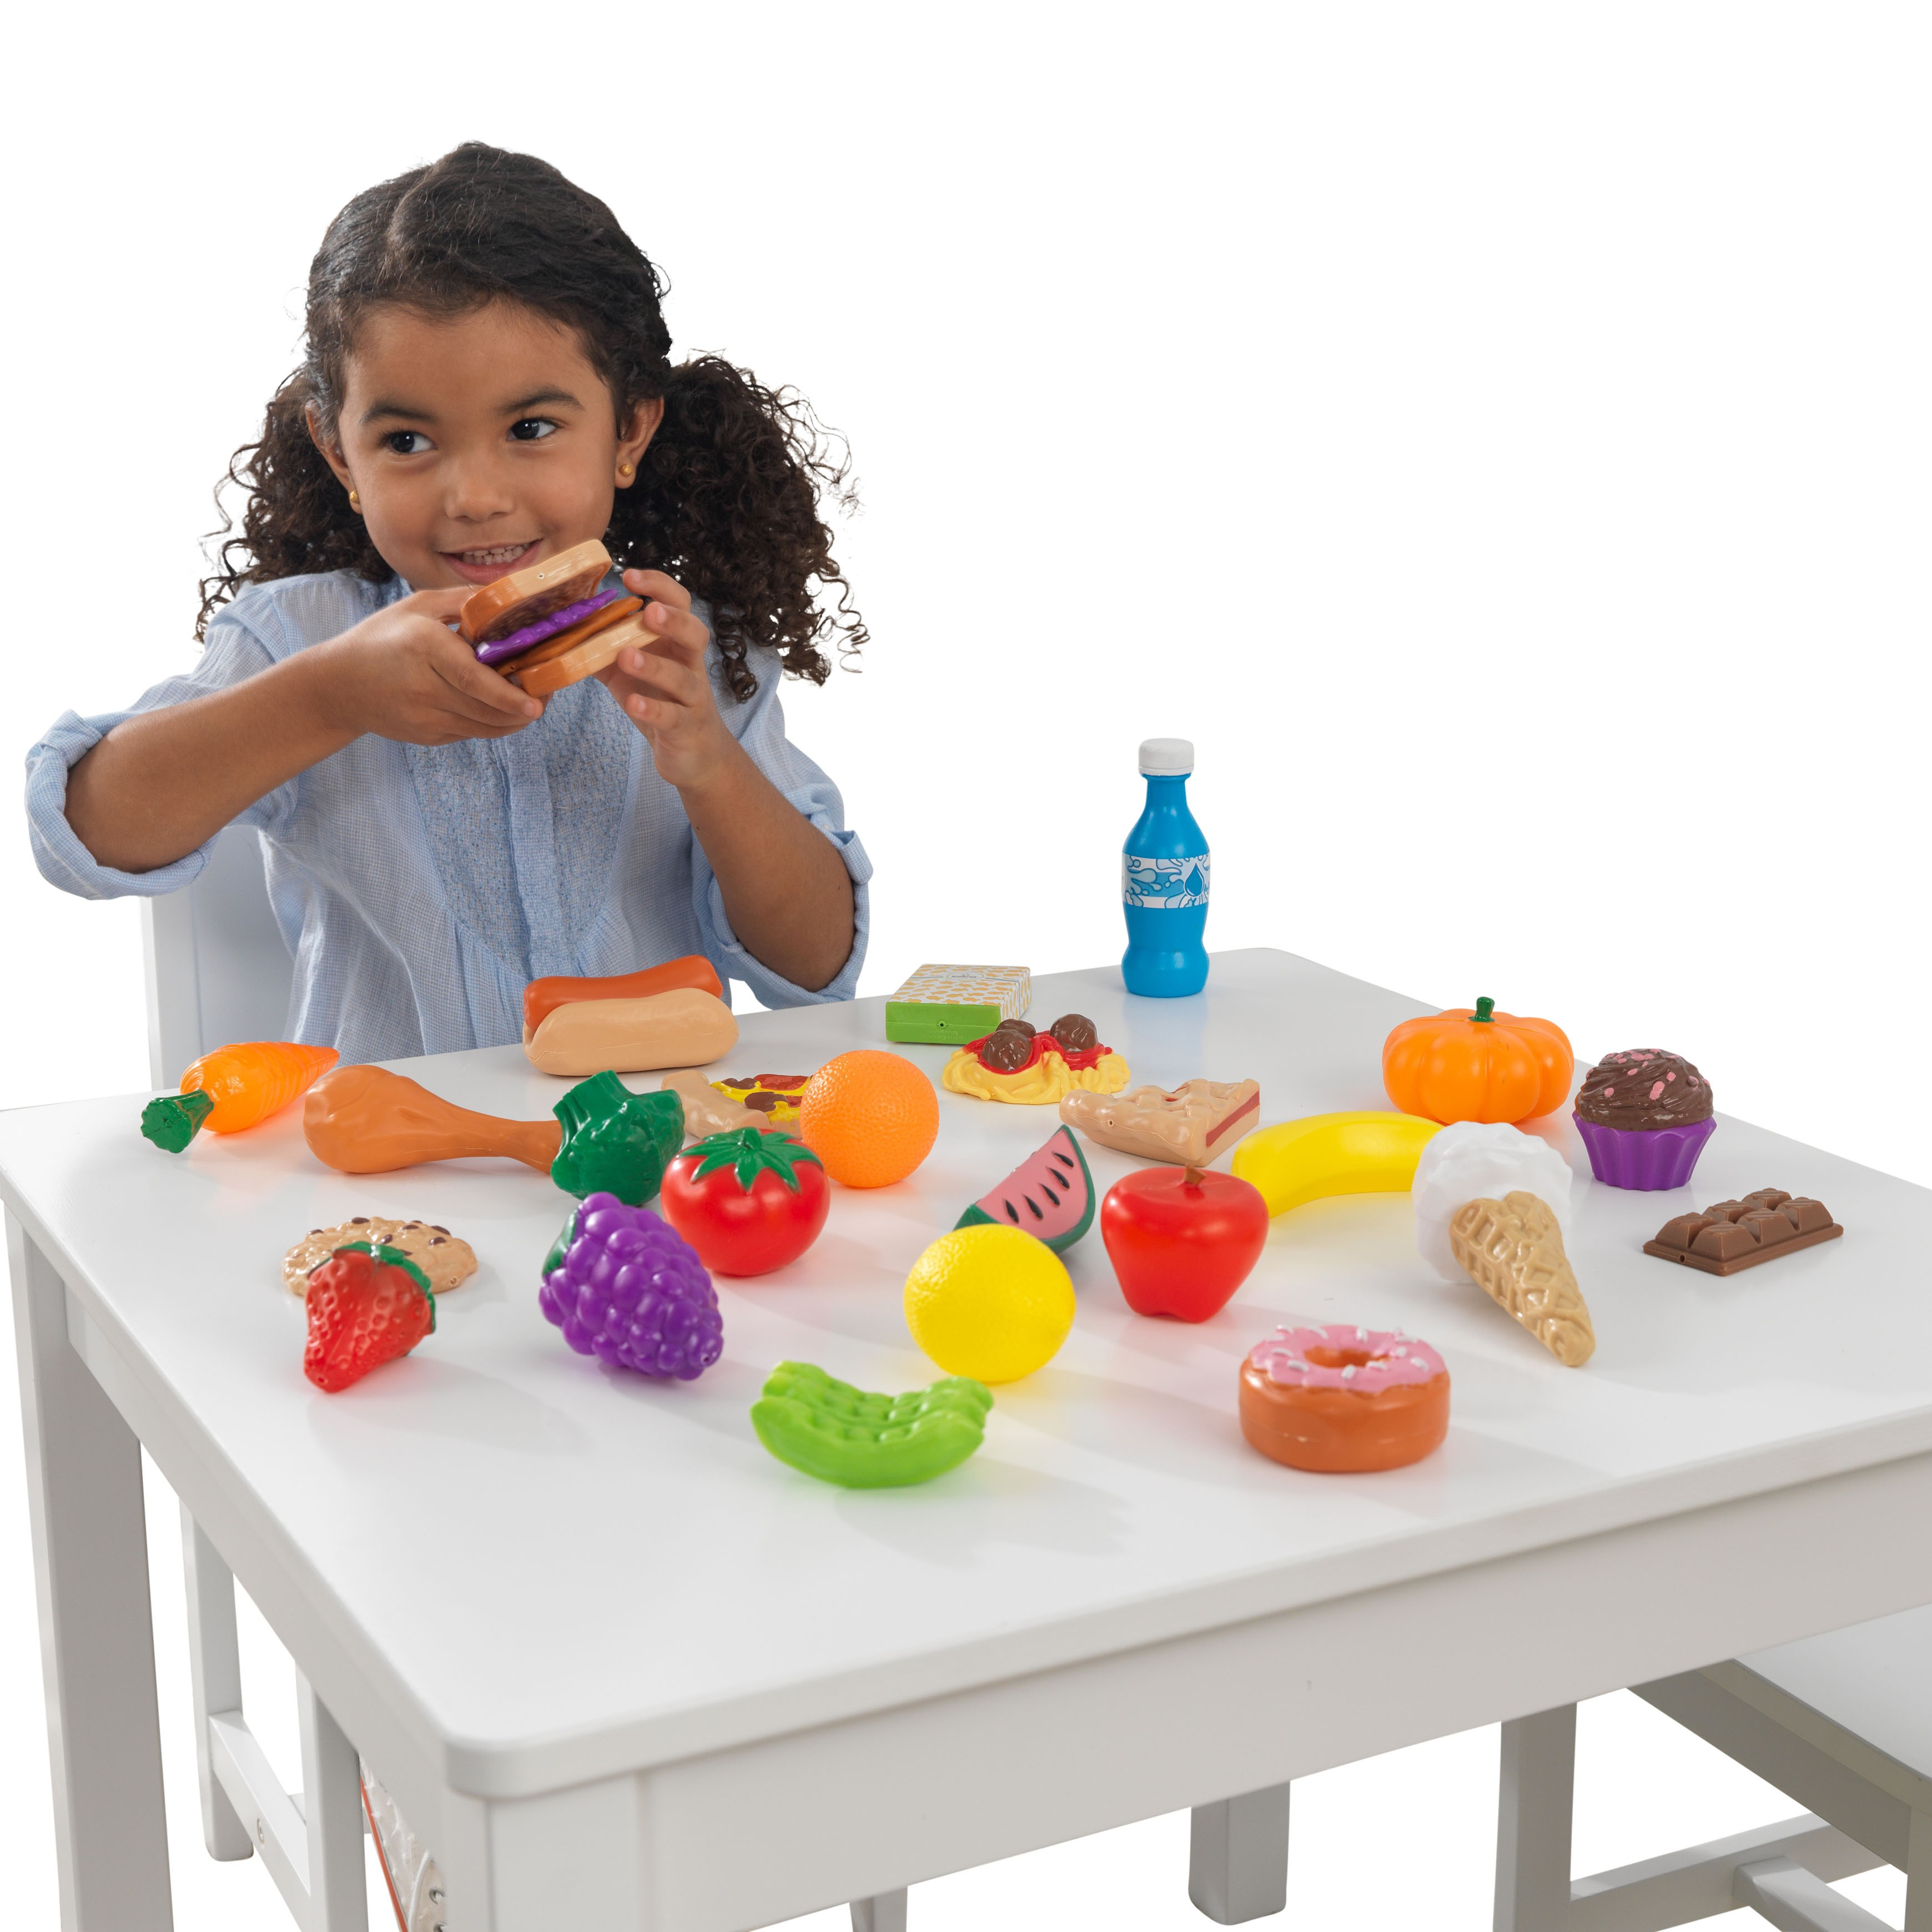 KidKraft 30-pc Play Food Set by KidKraft